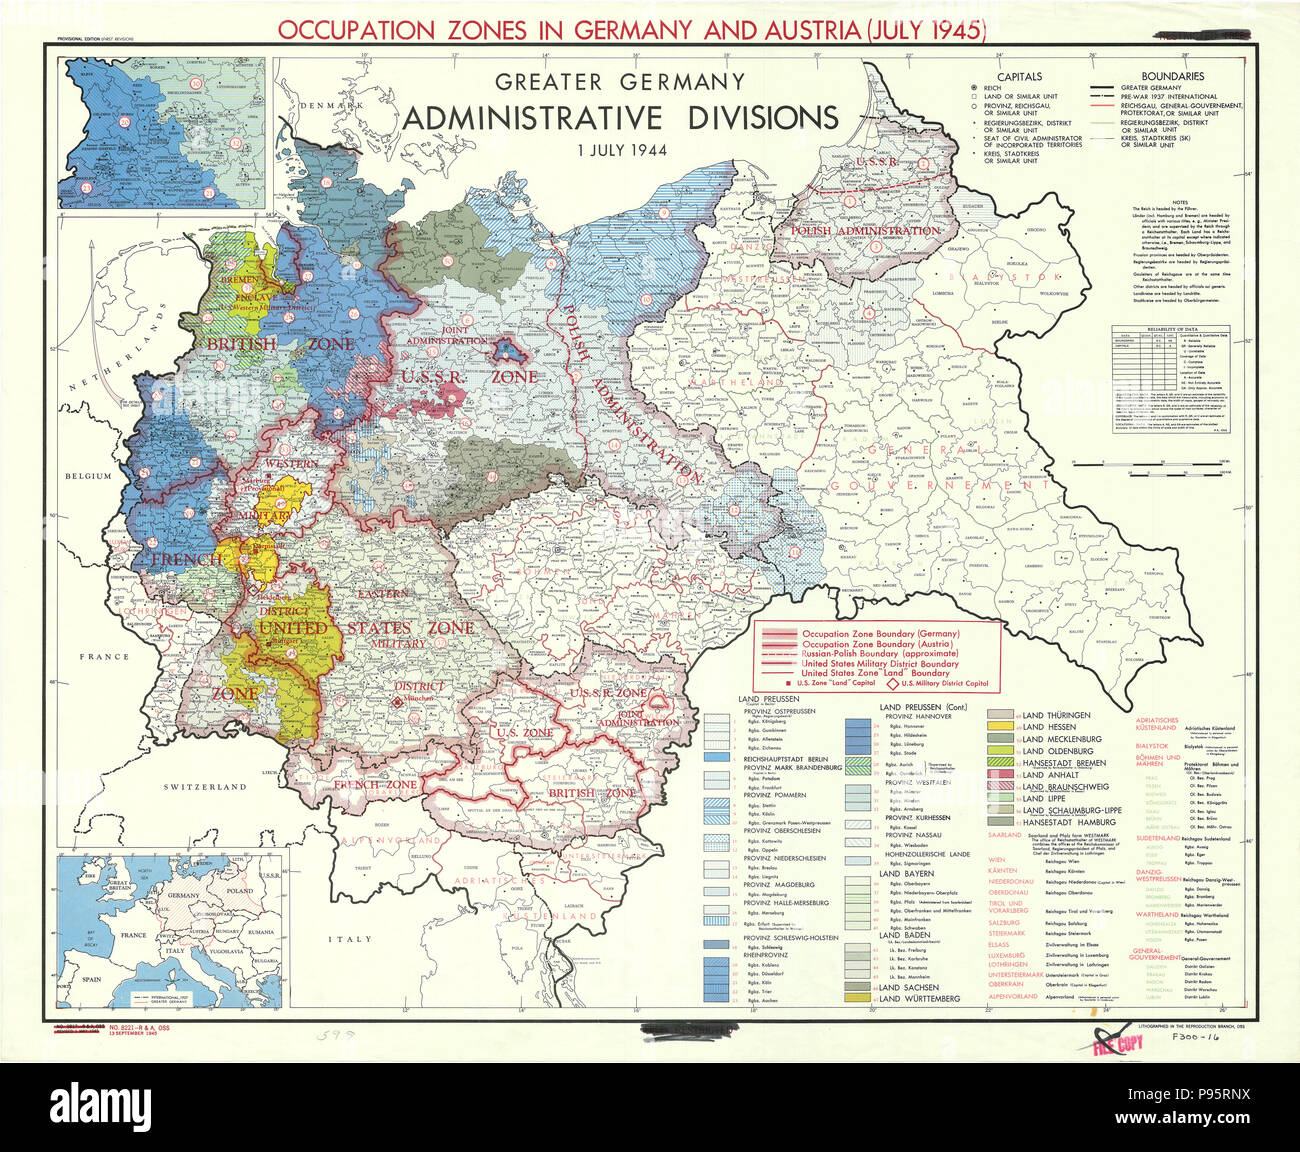 Map Showing Occupation Zones in Germany and Austria - July ...